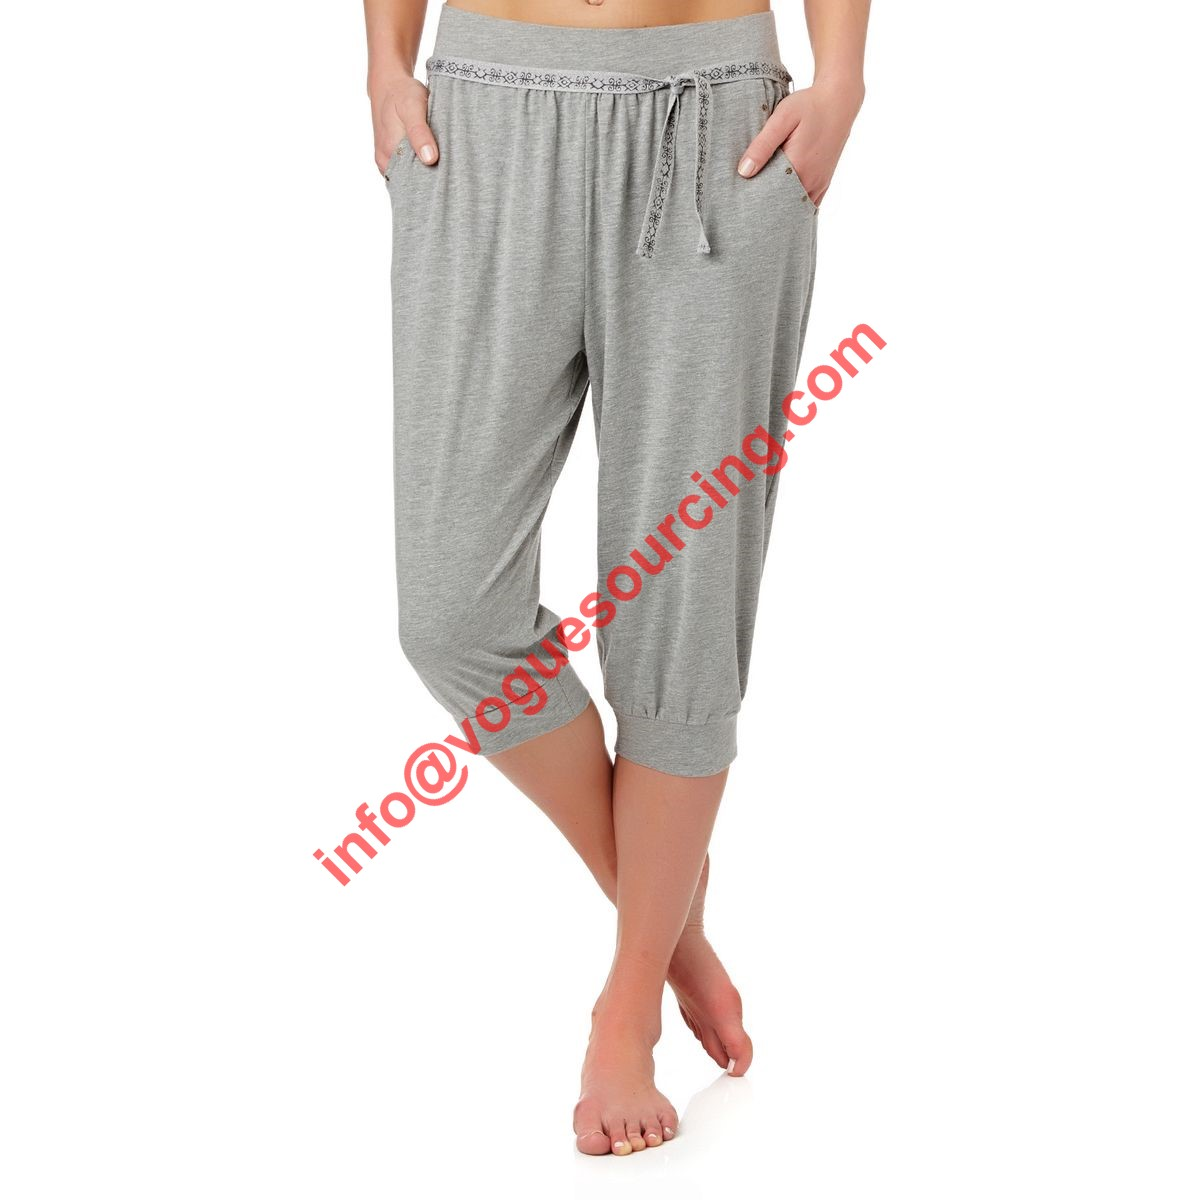 Yoga-3-4-pant-manufacturers-suppliers-voguesourcing